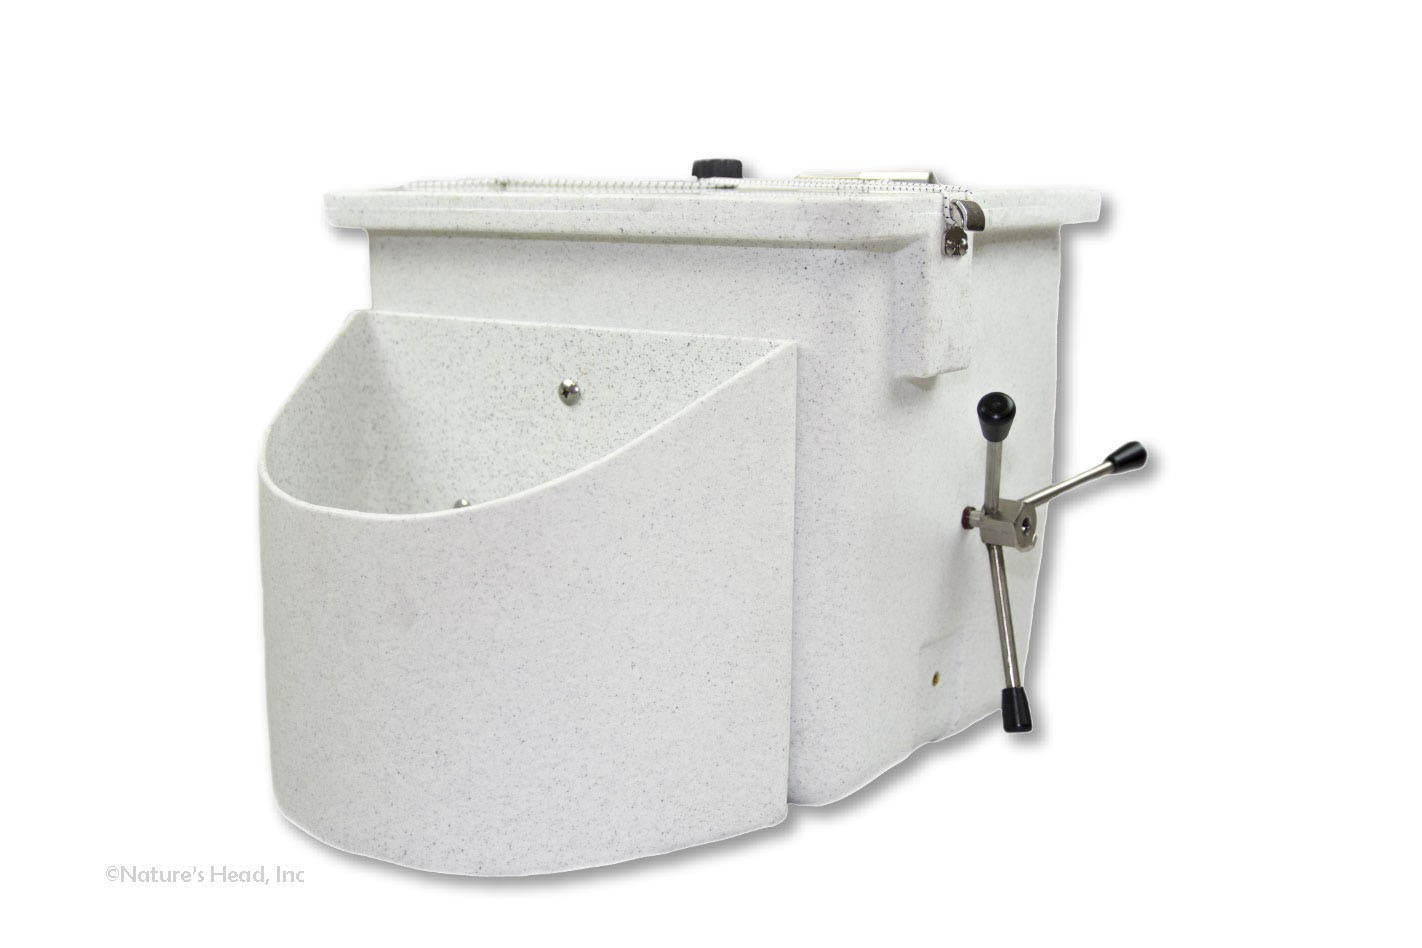 Composting Toilet Base with Lid